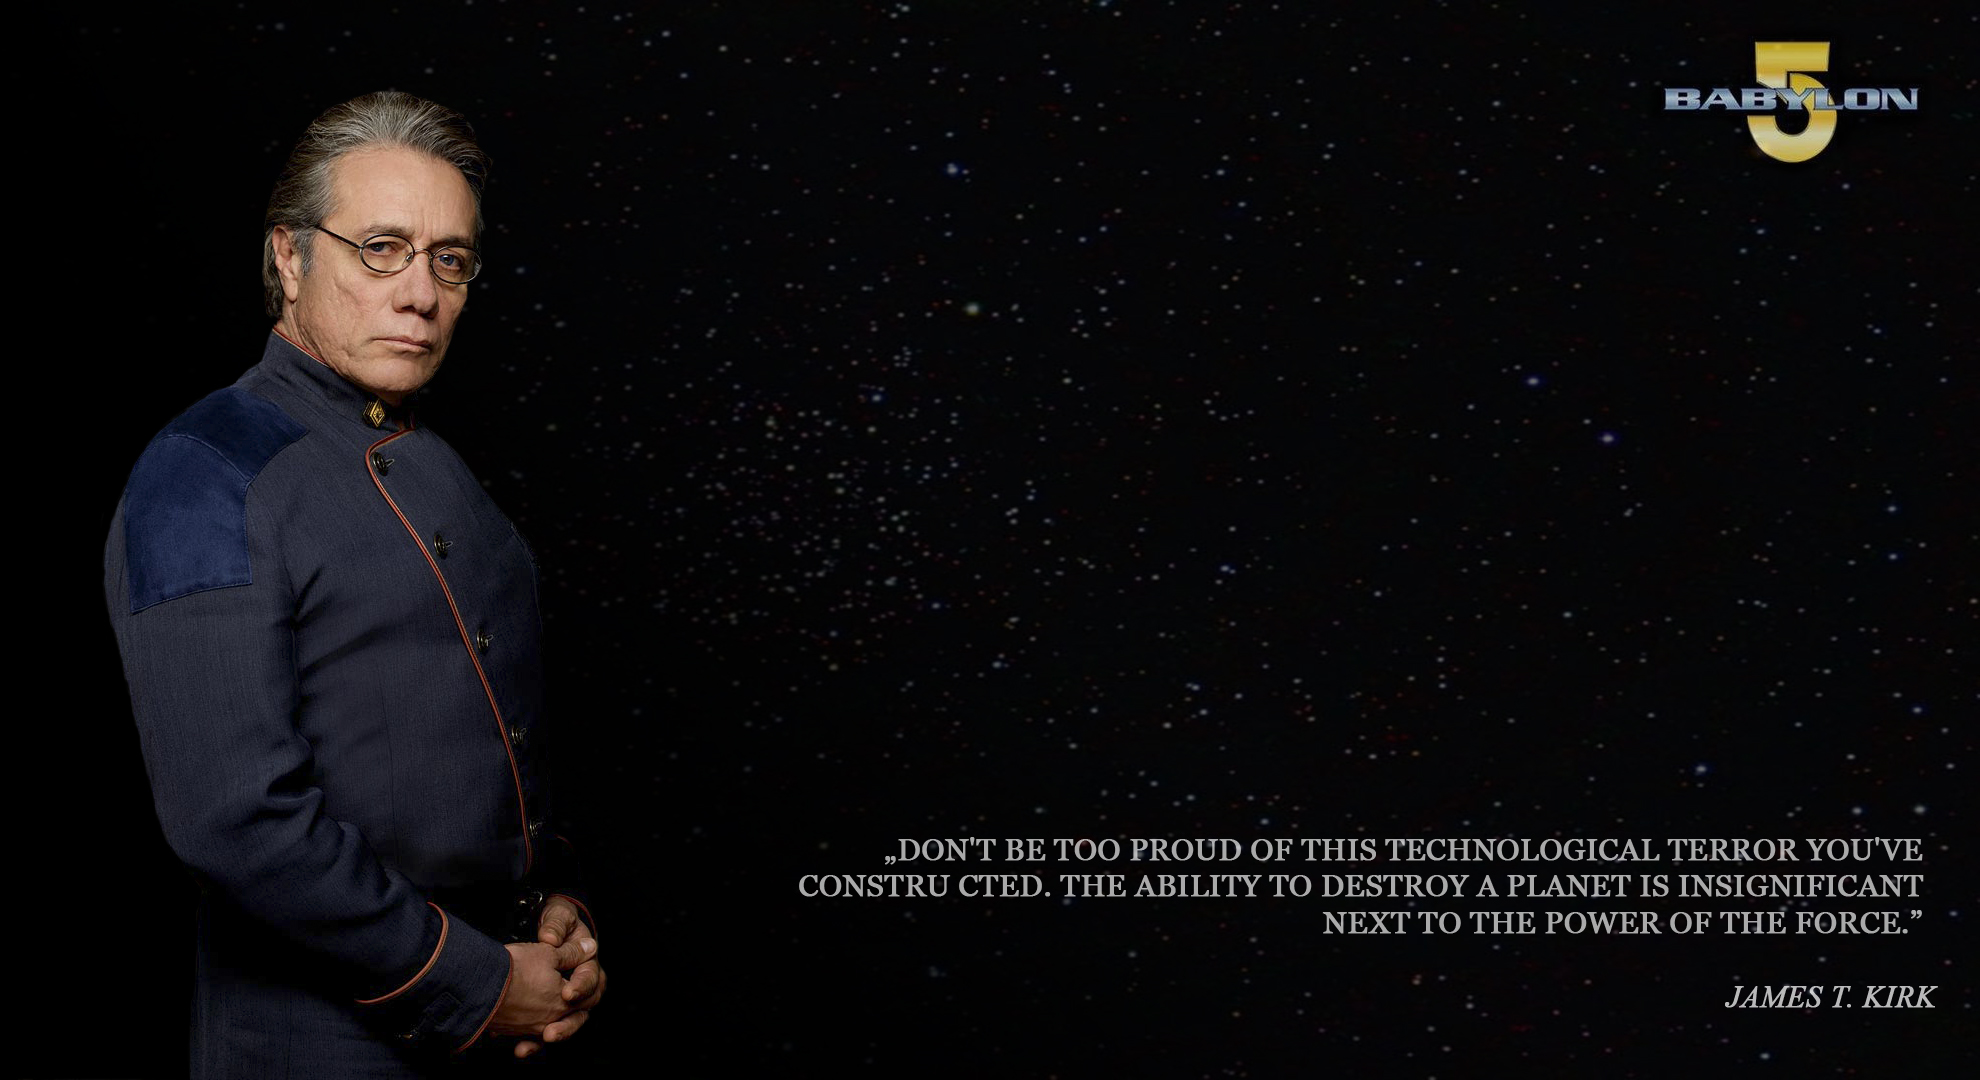 Edward James Olmos's quote #8